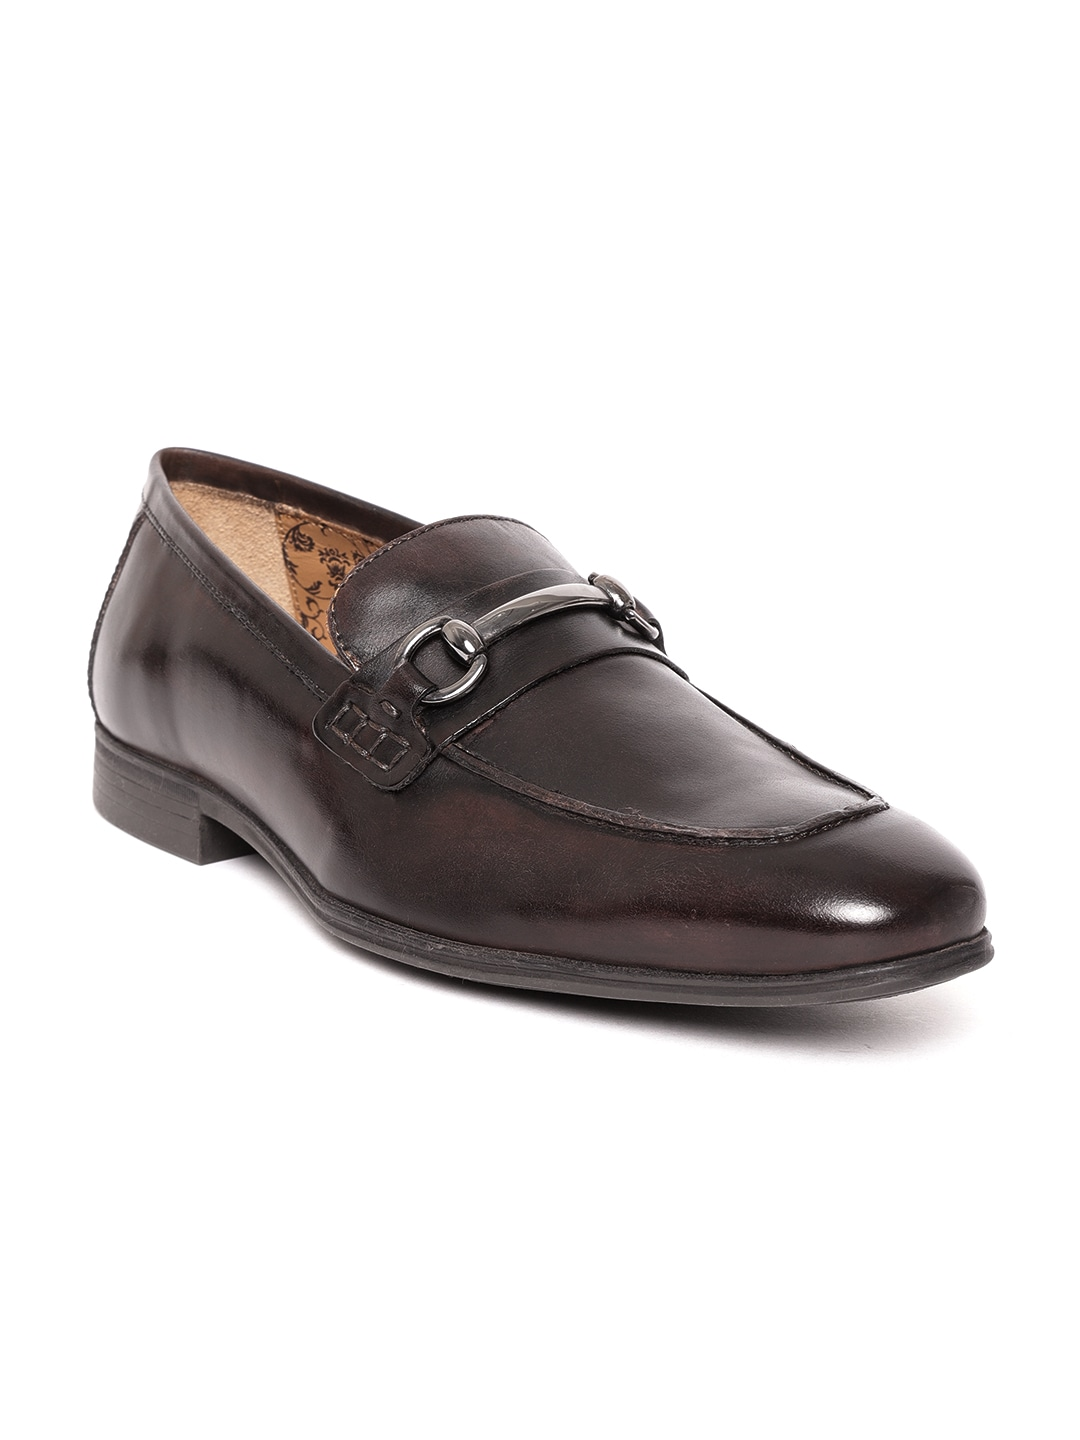 2e7efd9cacff Van Heusen Loafers Shoes - Buy Van Heusen Loafers Shoes online in India